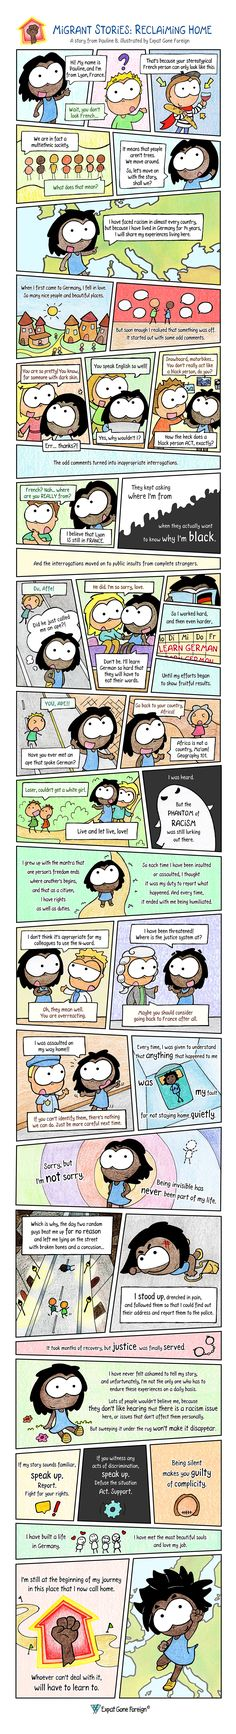 A few months ago I had the pleasure of meeting an inspiring woman who shared with me her migrant story. A story of strength, resilience and kindness that the world really needs to hear. ~ #Migrant #Stories #Reclaiming #Home #Living #Abroad #Racism #Discrimination #Diversity #LetsTalkRacism World Need, A Comics, Diversity, Strength, Let It Be, Woman, Life, Women, Electric Power